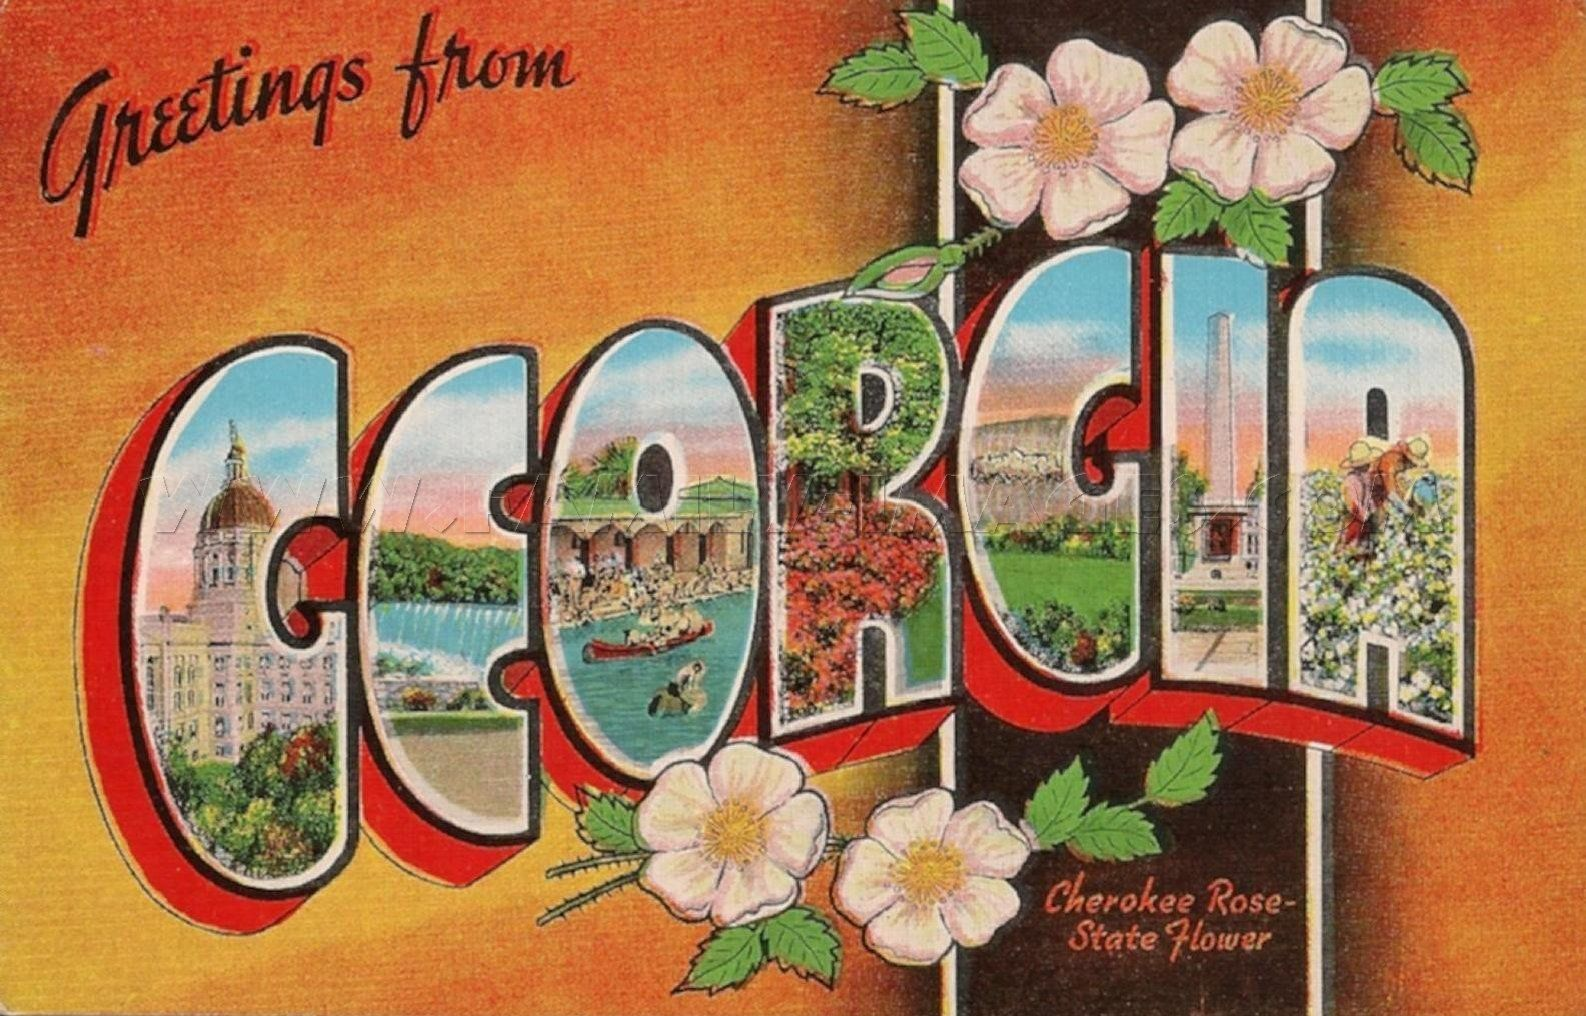 108 best vintage greetings from postcards images on pinterest 108 best vintage greetings from postcards images on pinterest post cards vintage vintage postcards and vintage travel postcards kristyandbryce Images